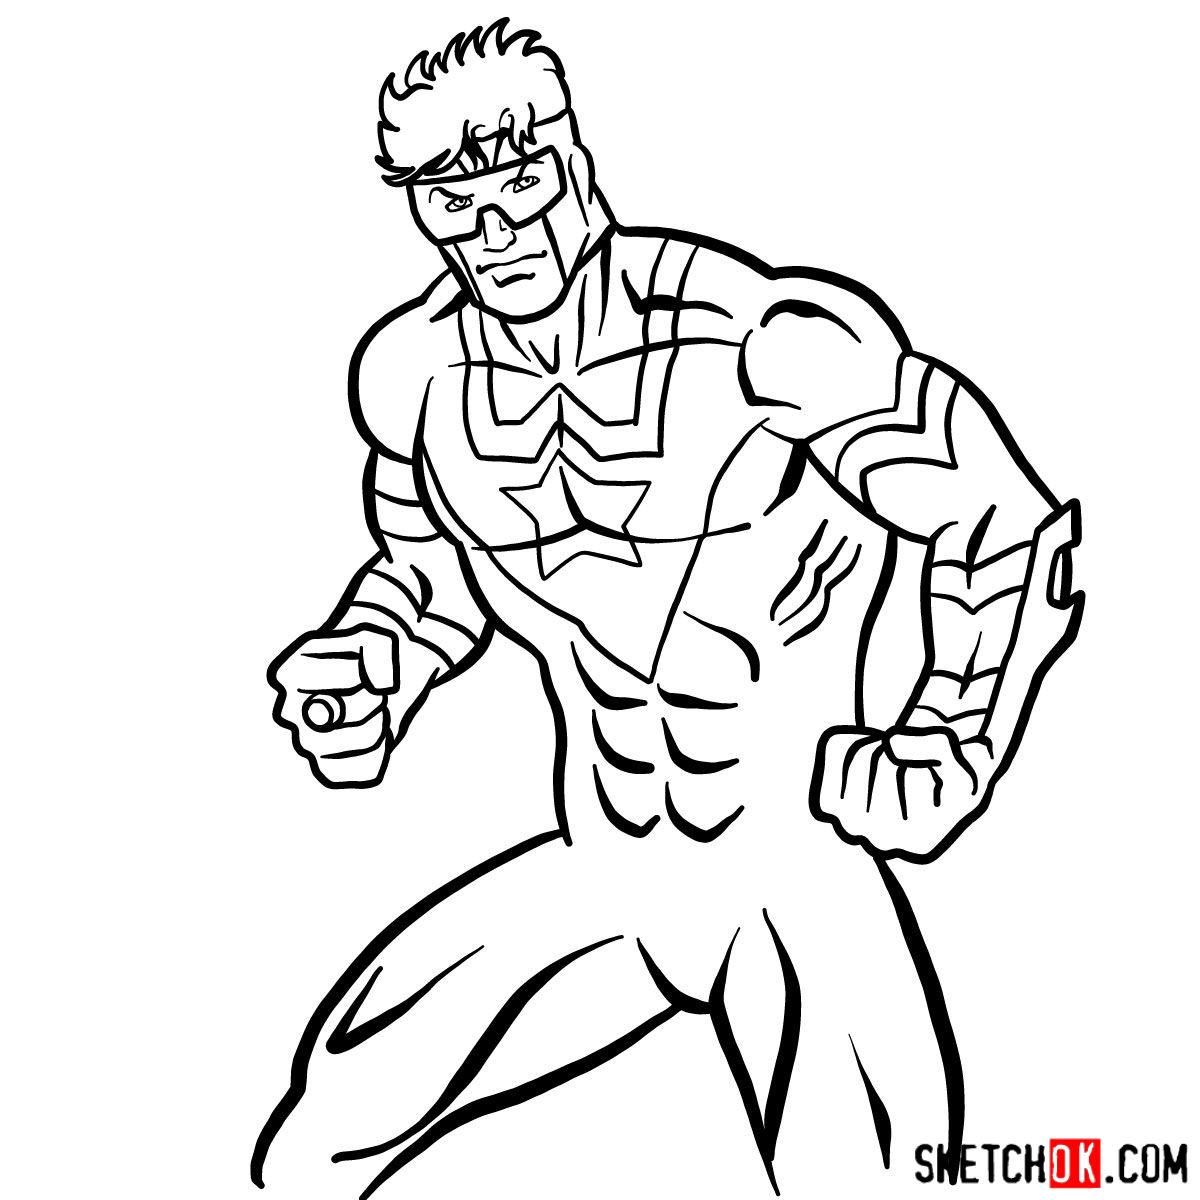 How to draw Booster Gold - step 13